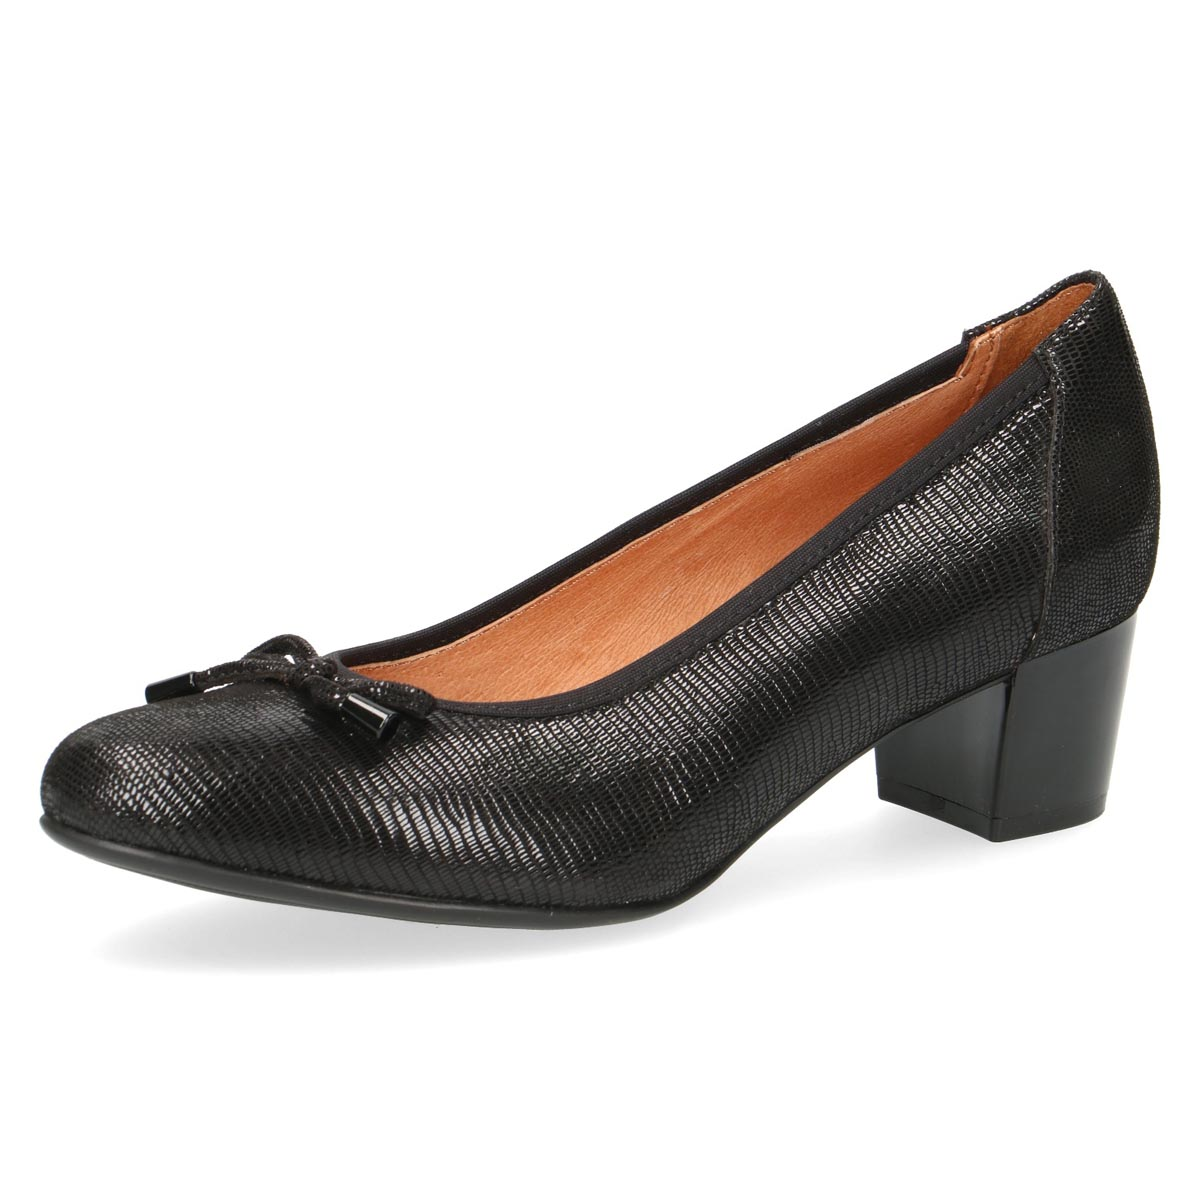 Caprice- Beryl Black Court Shoe